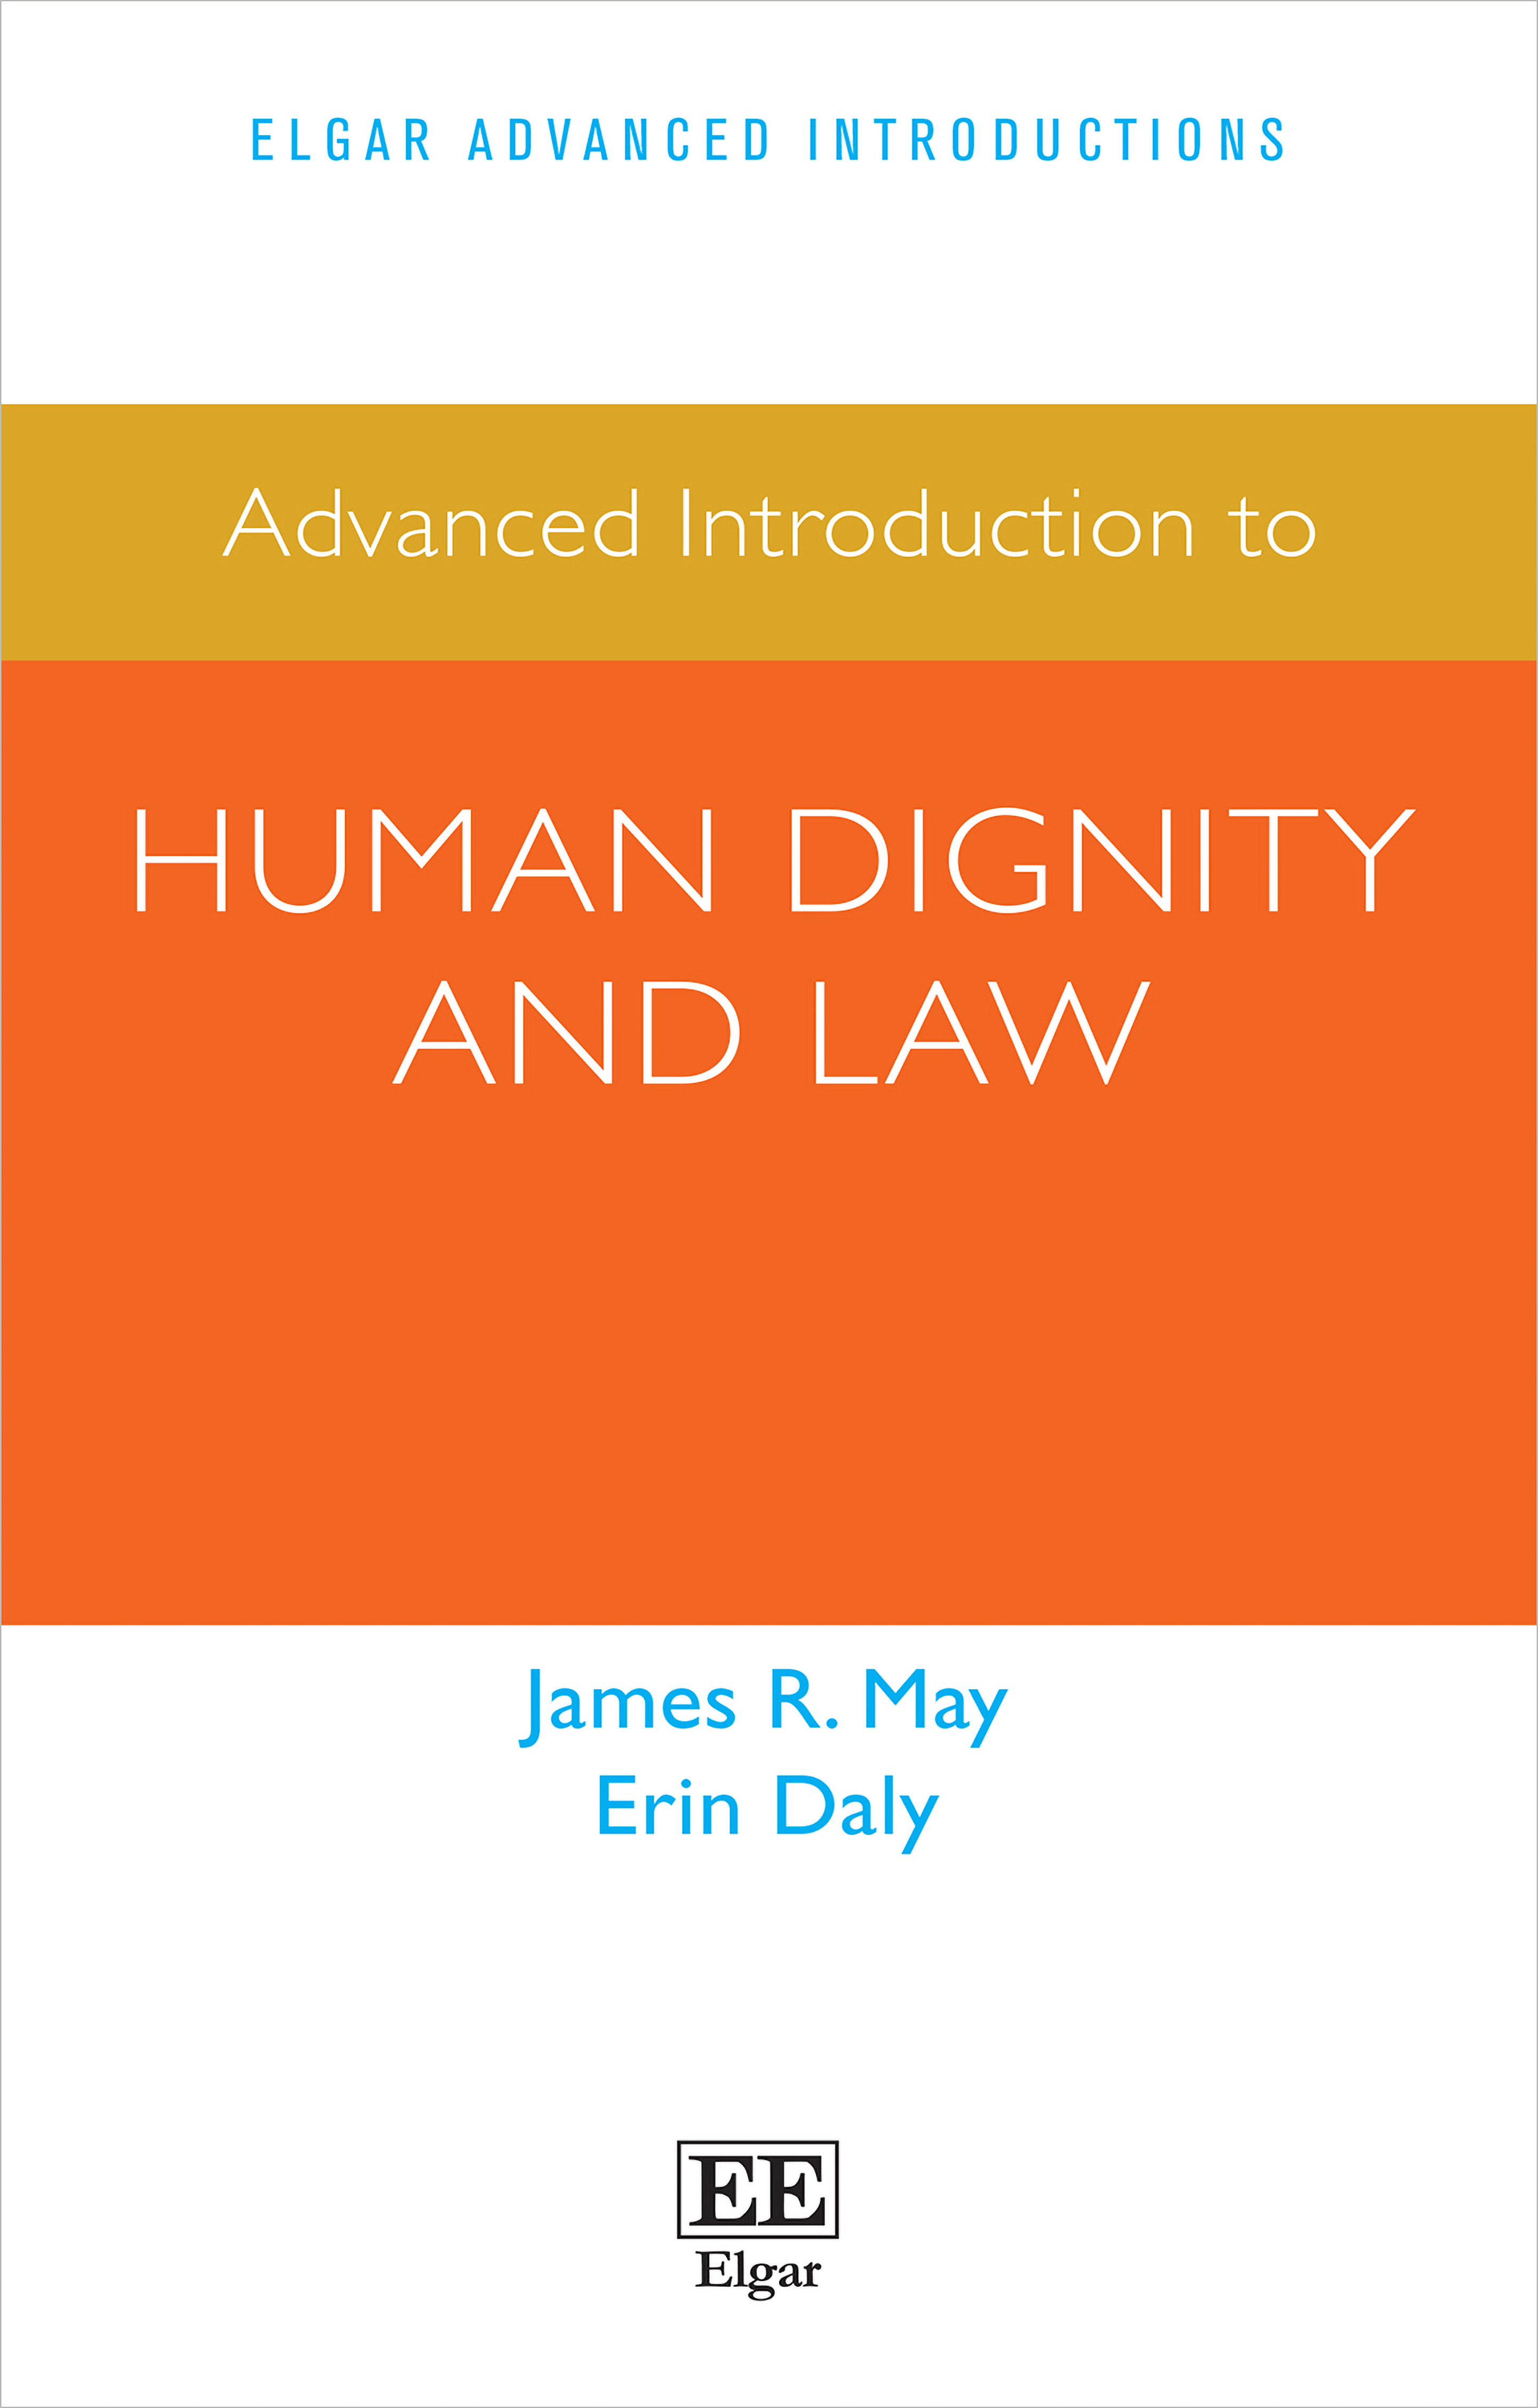 Advanced Introduction to Human Dignity and Law